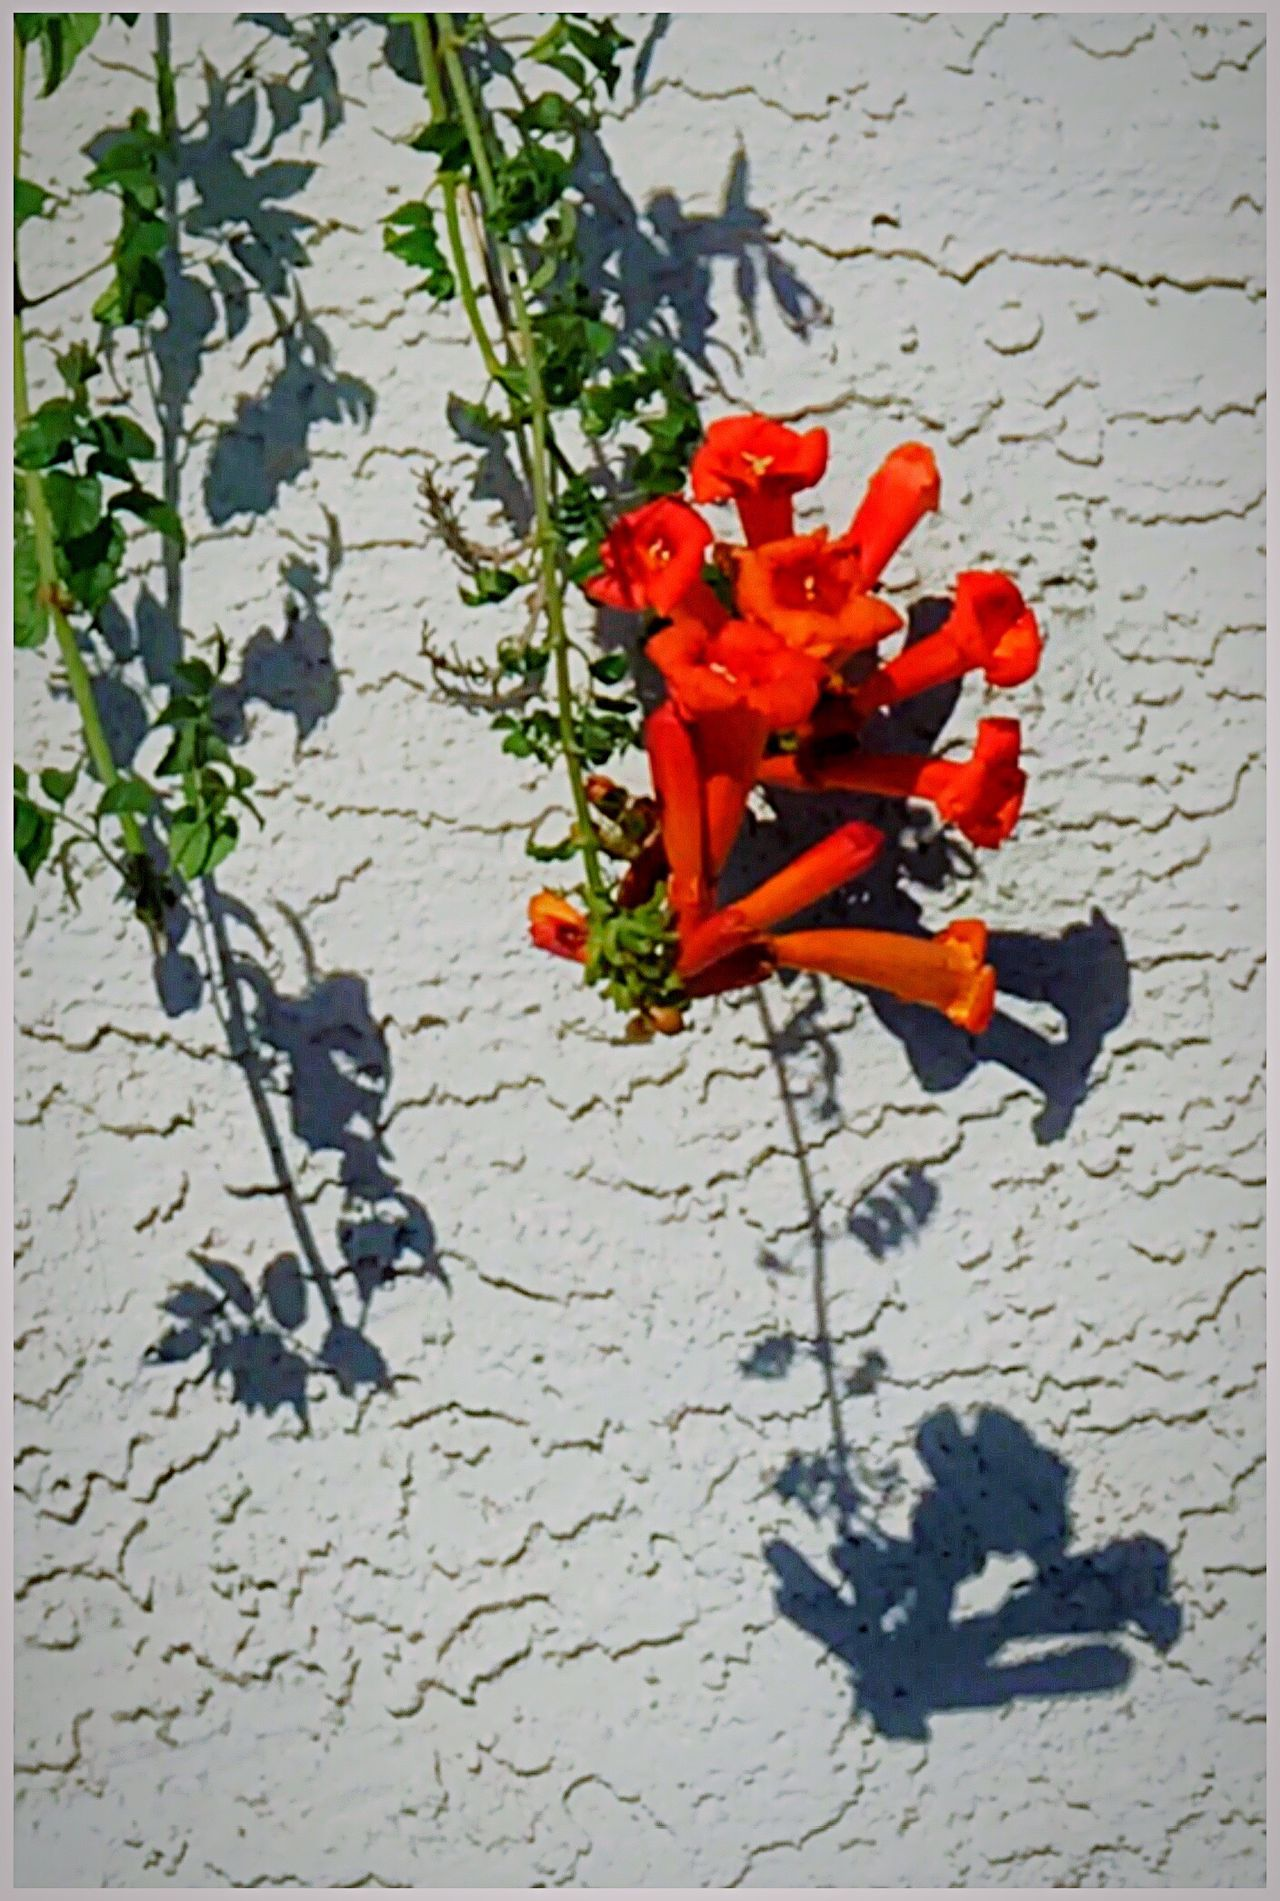 Trumpet Vine spills over a sound containment wall along Torrey Boulevard. Red Red Flowers Trumpet Vine Campsis Campsis Radicans Lookingup High Angle View Close-up Leaf Outdoors Bignoniaceae Curtain Walls Lessismore Minimalist Minimalobsession Minimalism This Week On Eyeem Eyeemphoto IPhoneography Malephotographerofthemonth Wildflowers Branch wildflowe s